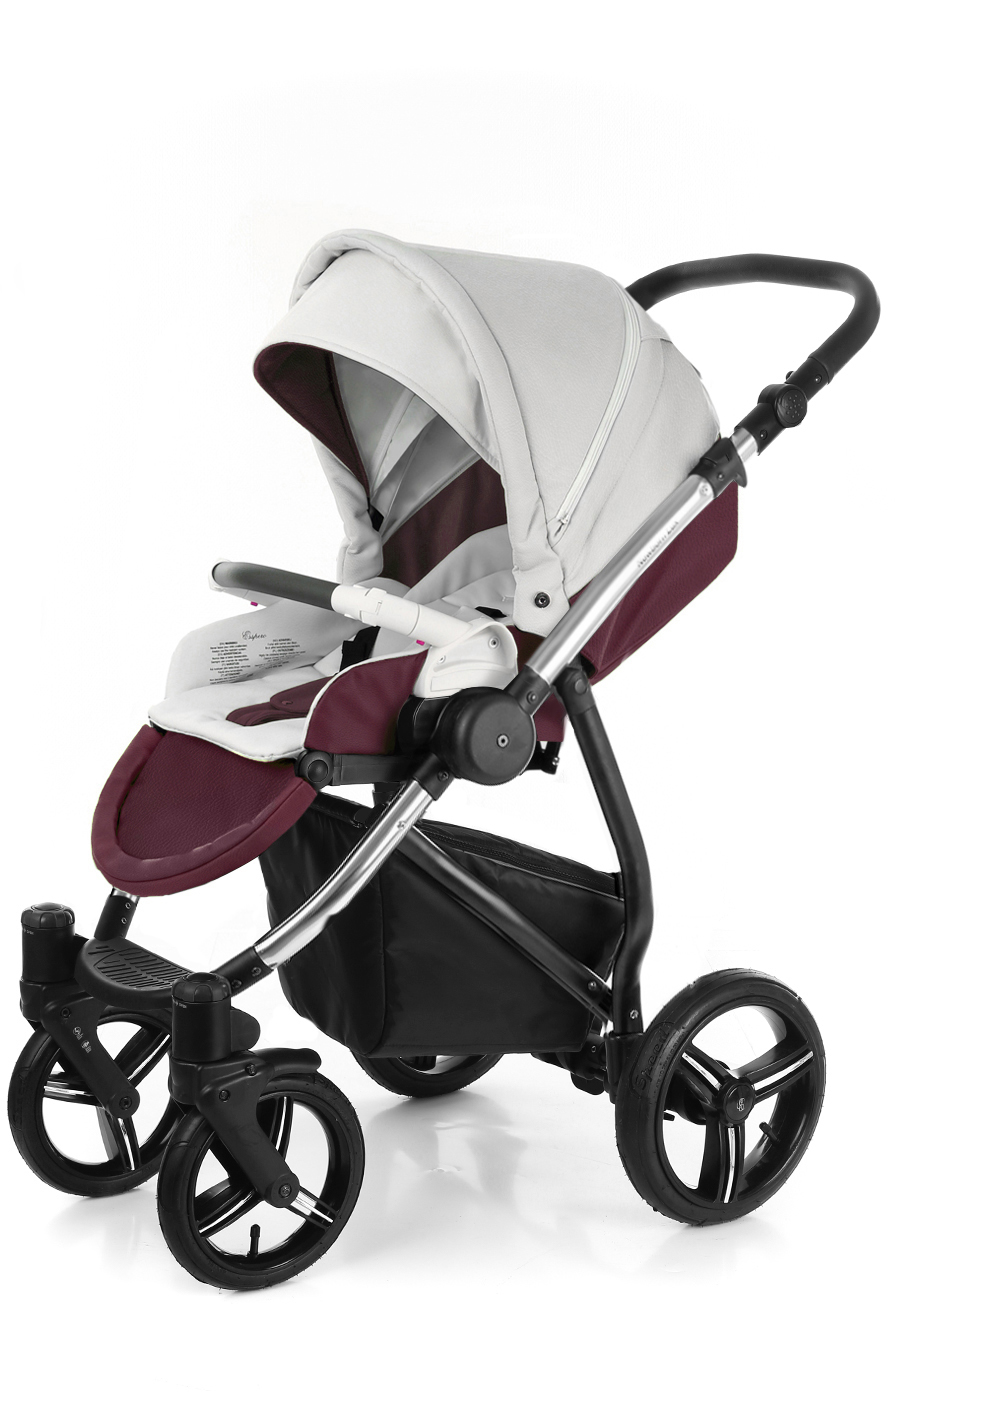 Прогулочная коляска Esspero Grand Newborn Lux (шасси Chrome) Maroon leatherette